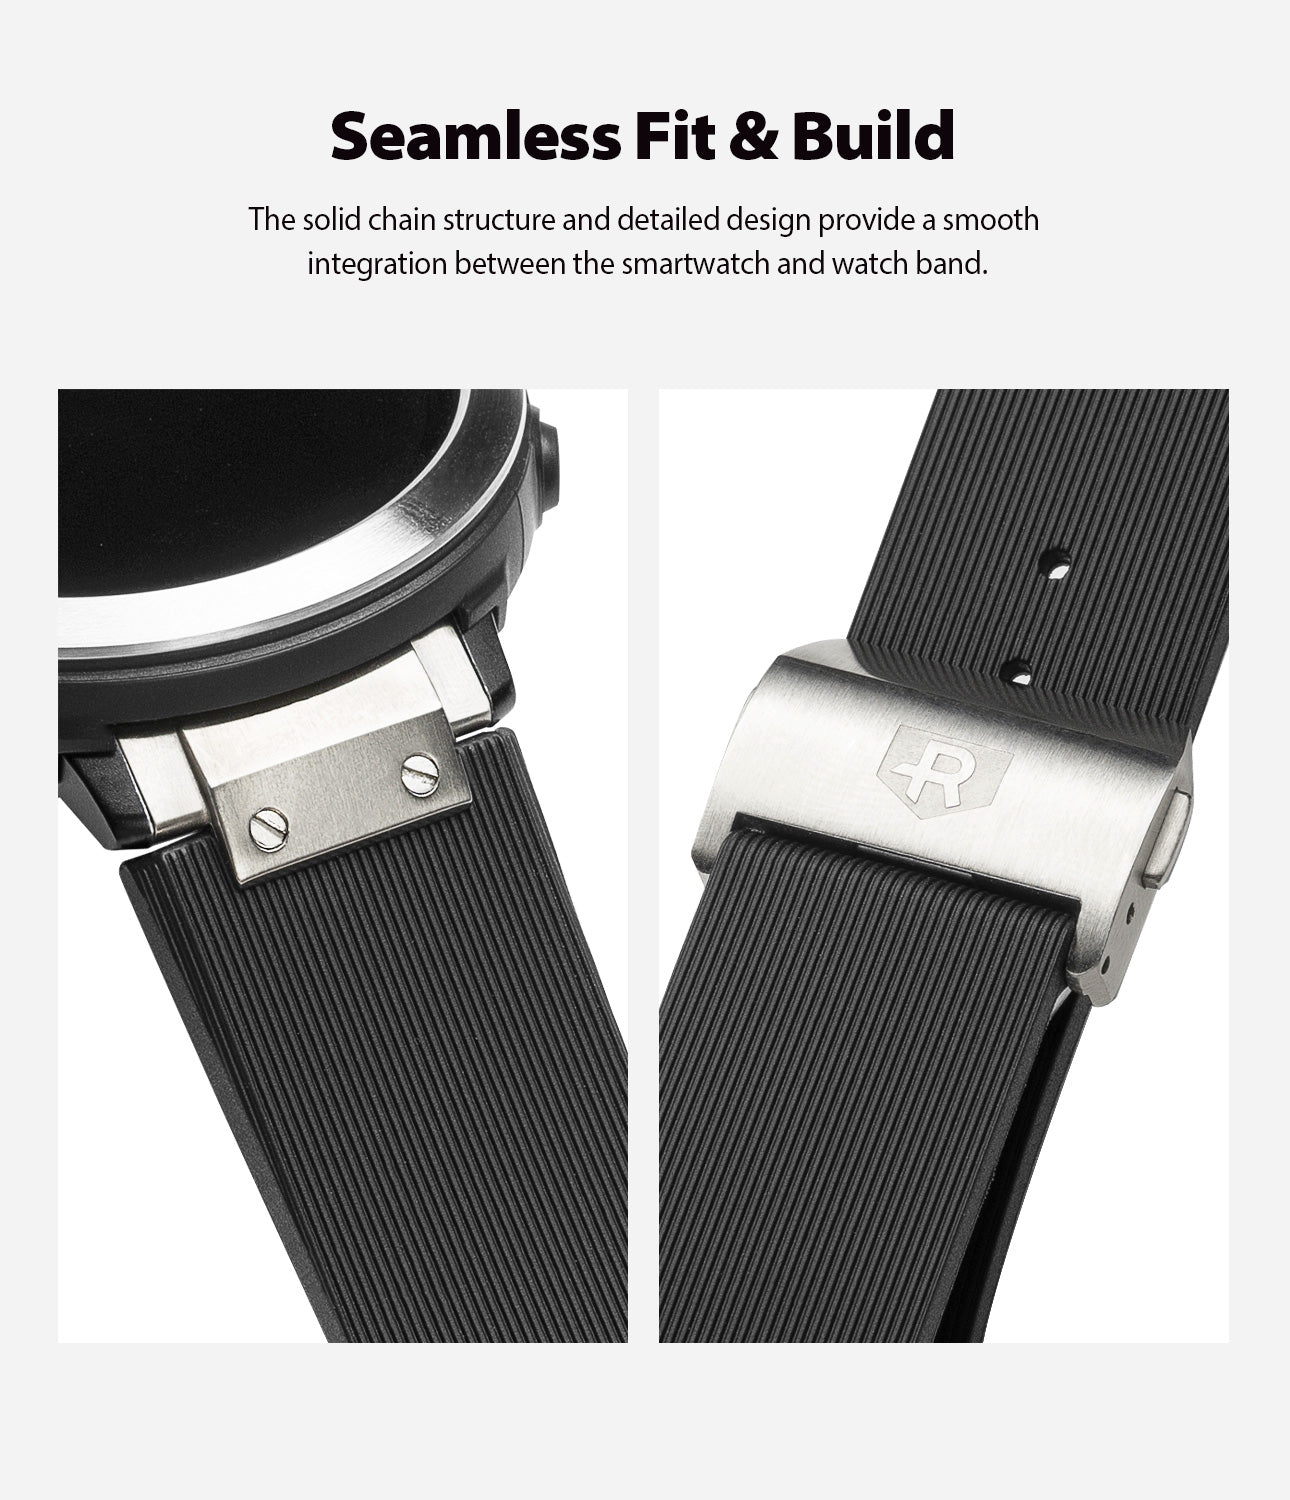 seamless fit & build